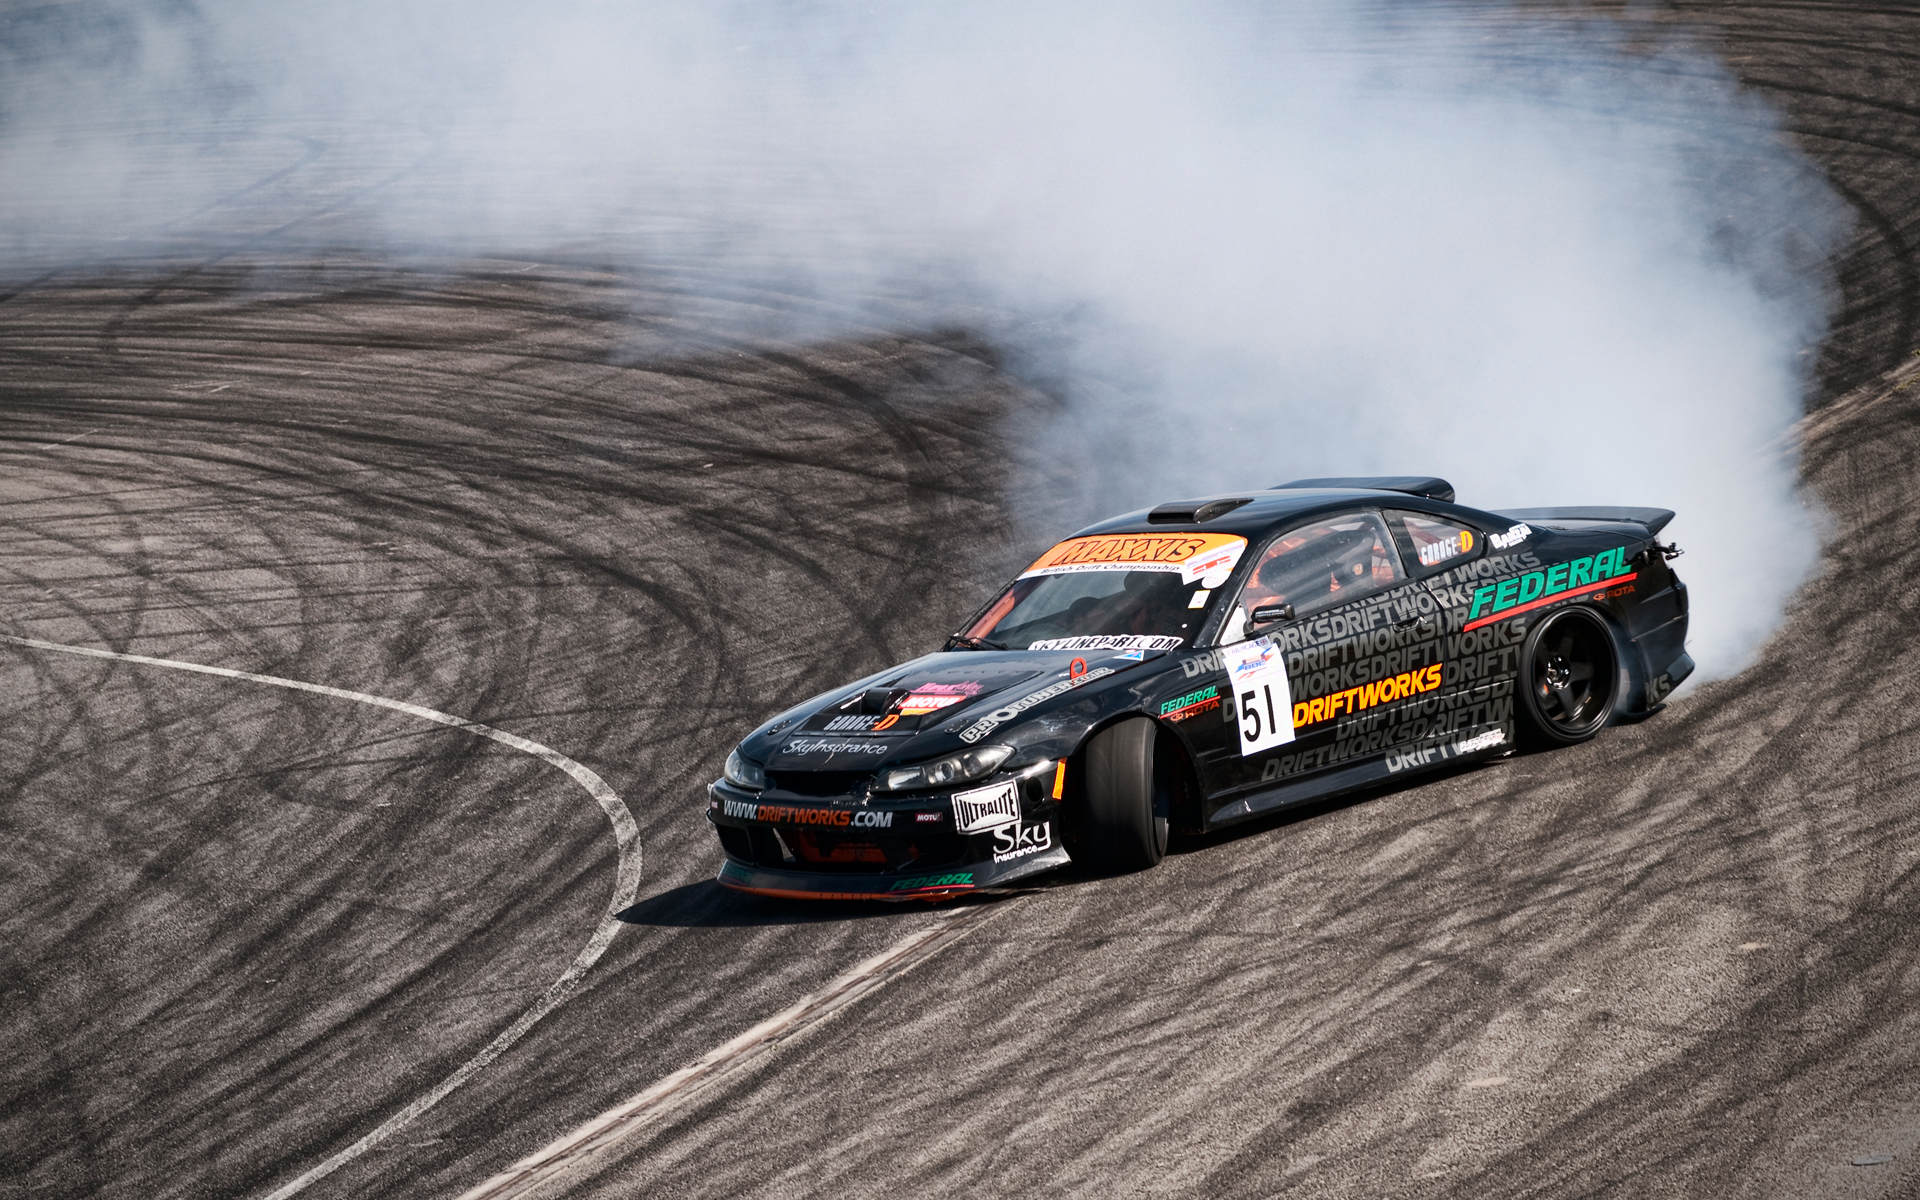 Images Of Drift Car Wallpapaer The Wallpaper